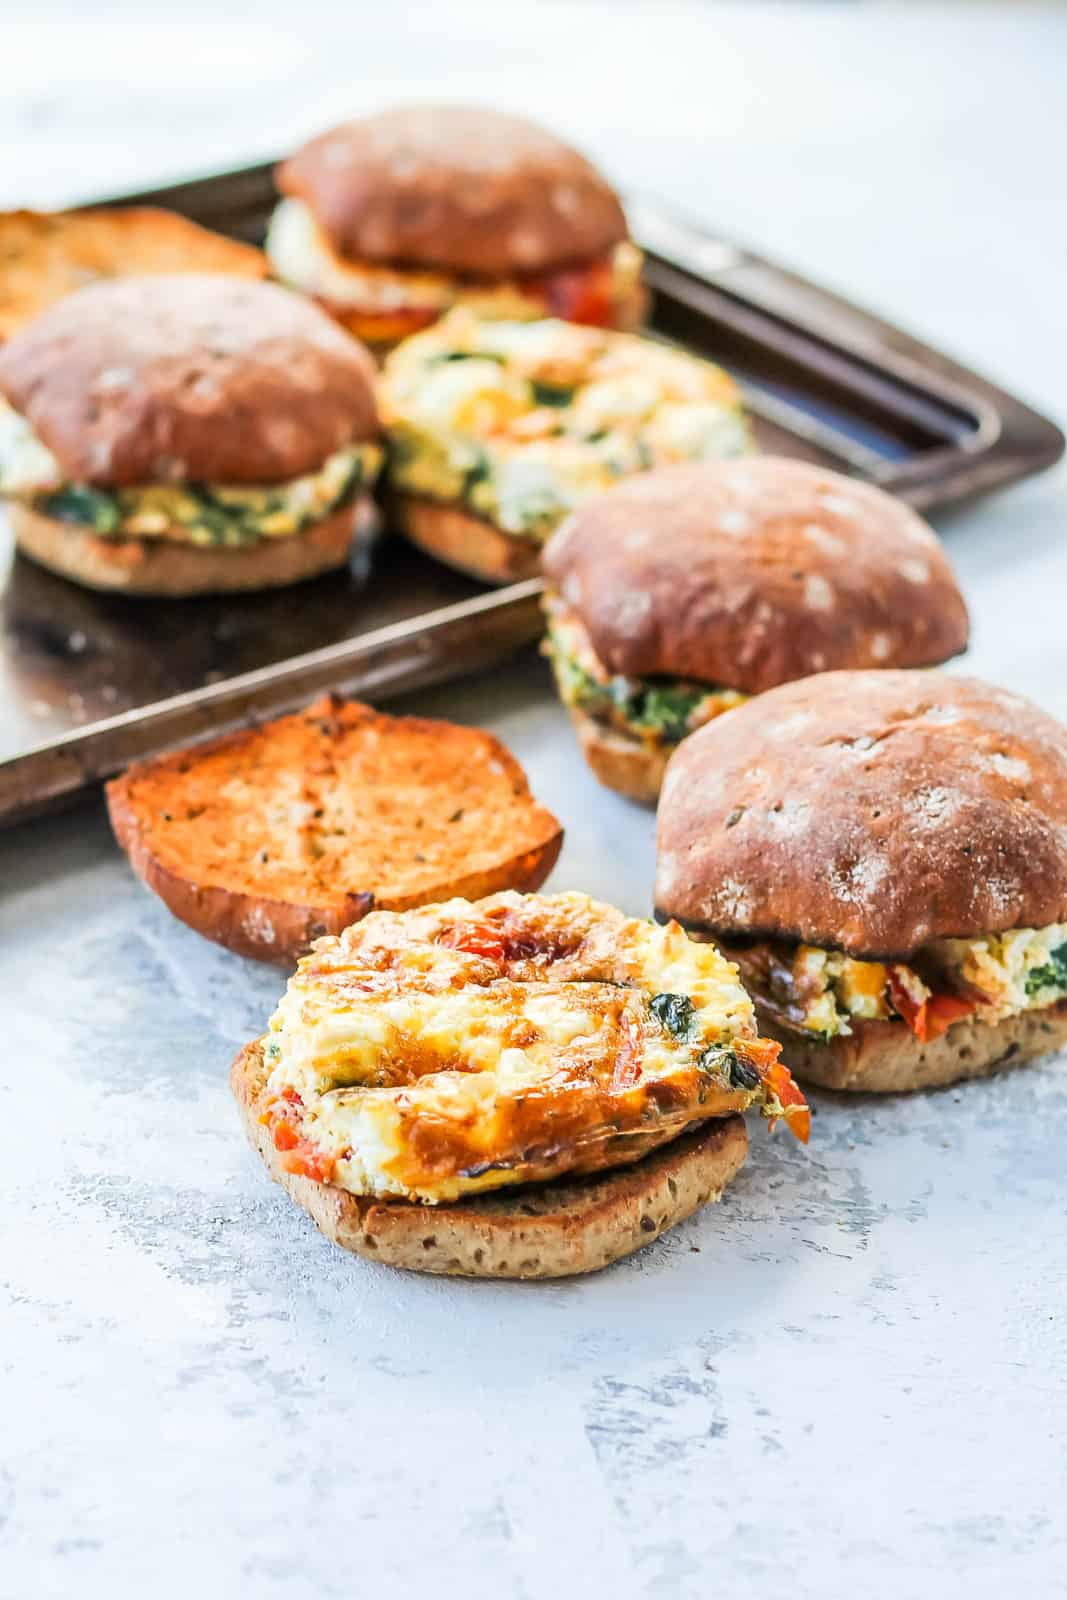 a tray with vegetarian breakfast sandwiches on a grey background